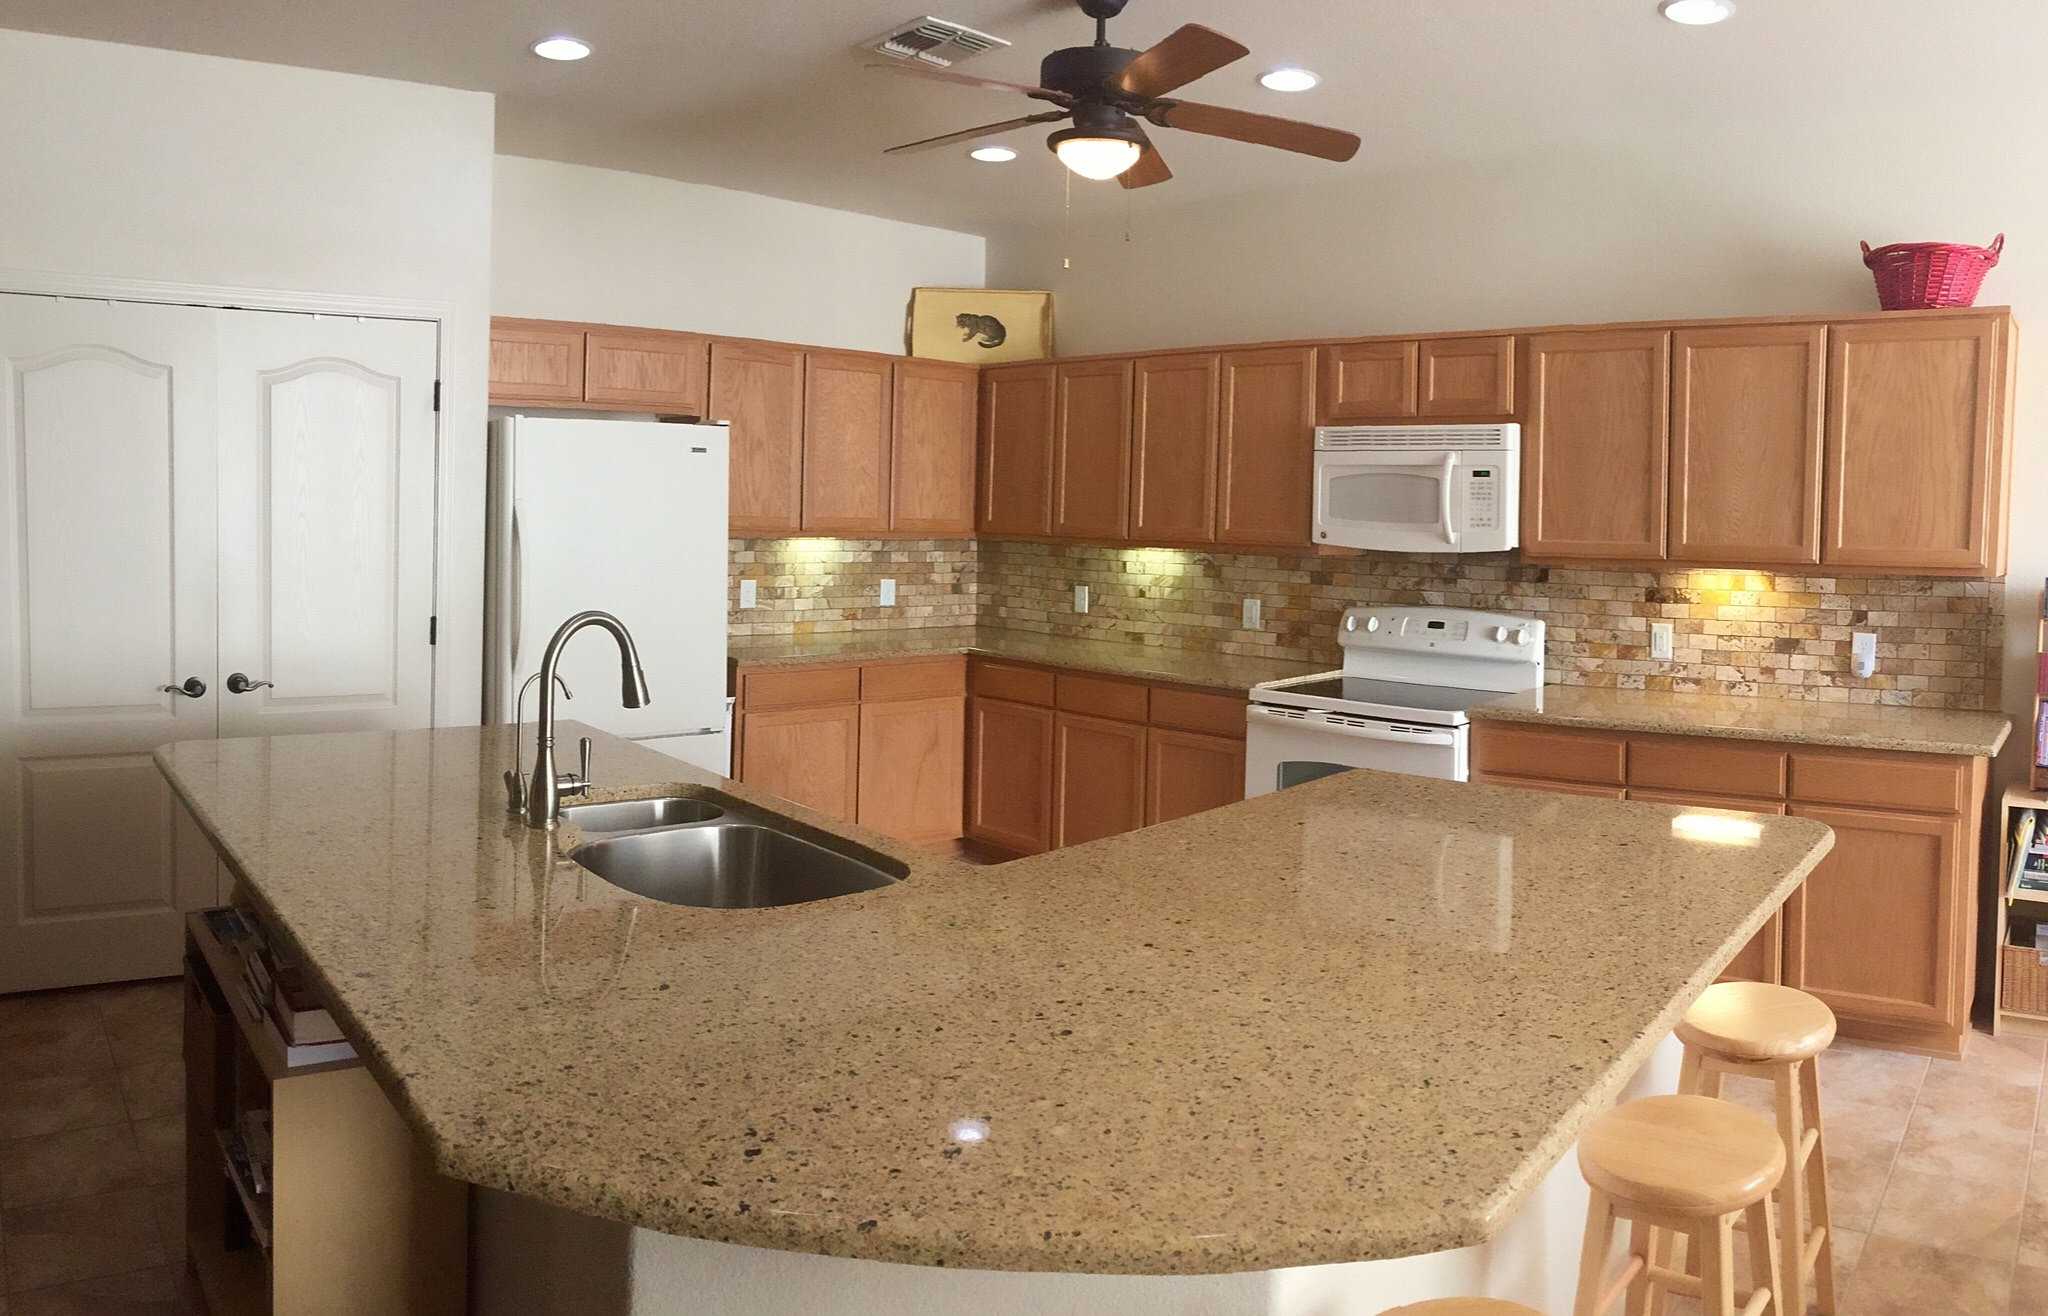 lightbox dataItem ik5madwl kitchen remodeling contractor Mr Fix It of Sierra Vista Remodeling Repair Restoration Kitchen Remodeling Contractor